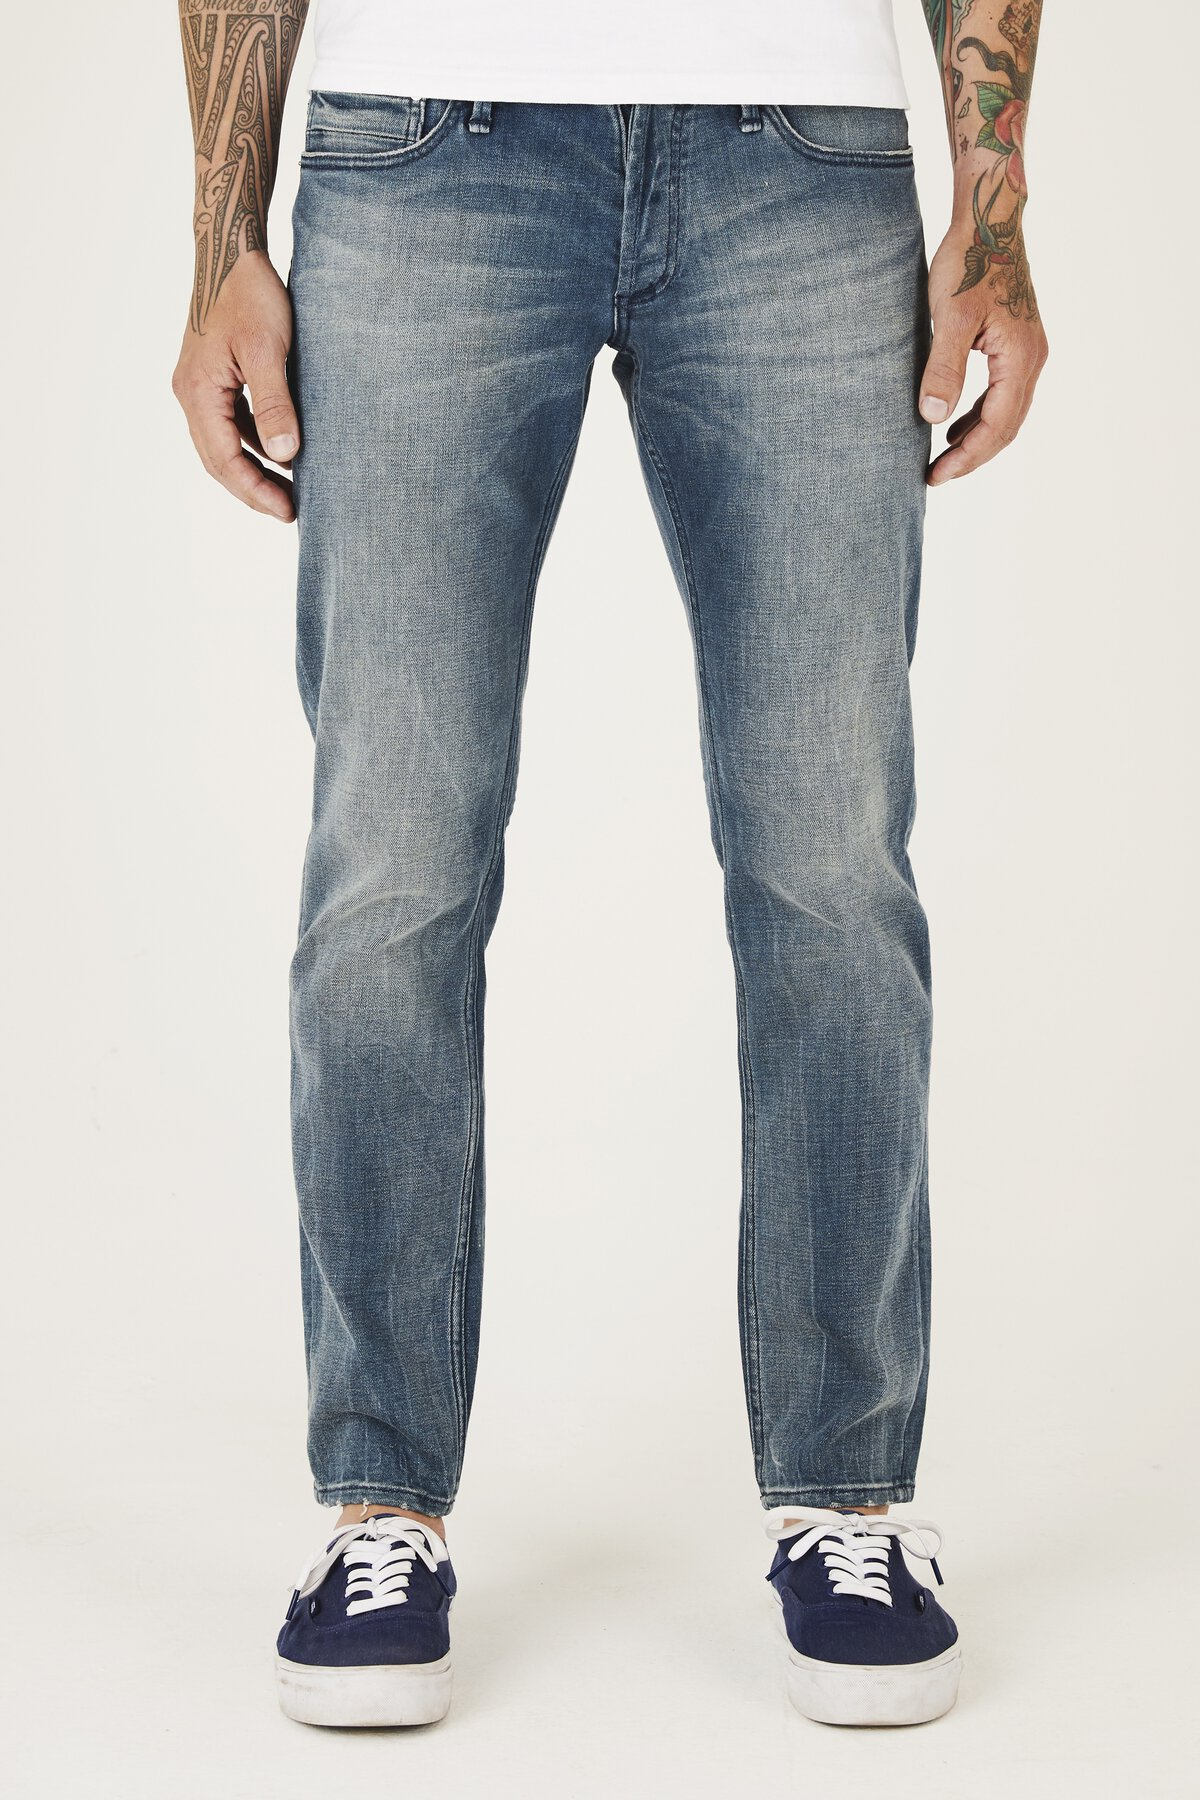 Hammer - Athletic Fit Jeans - Front